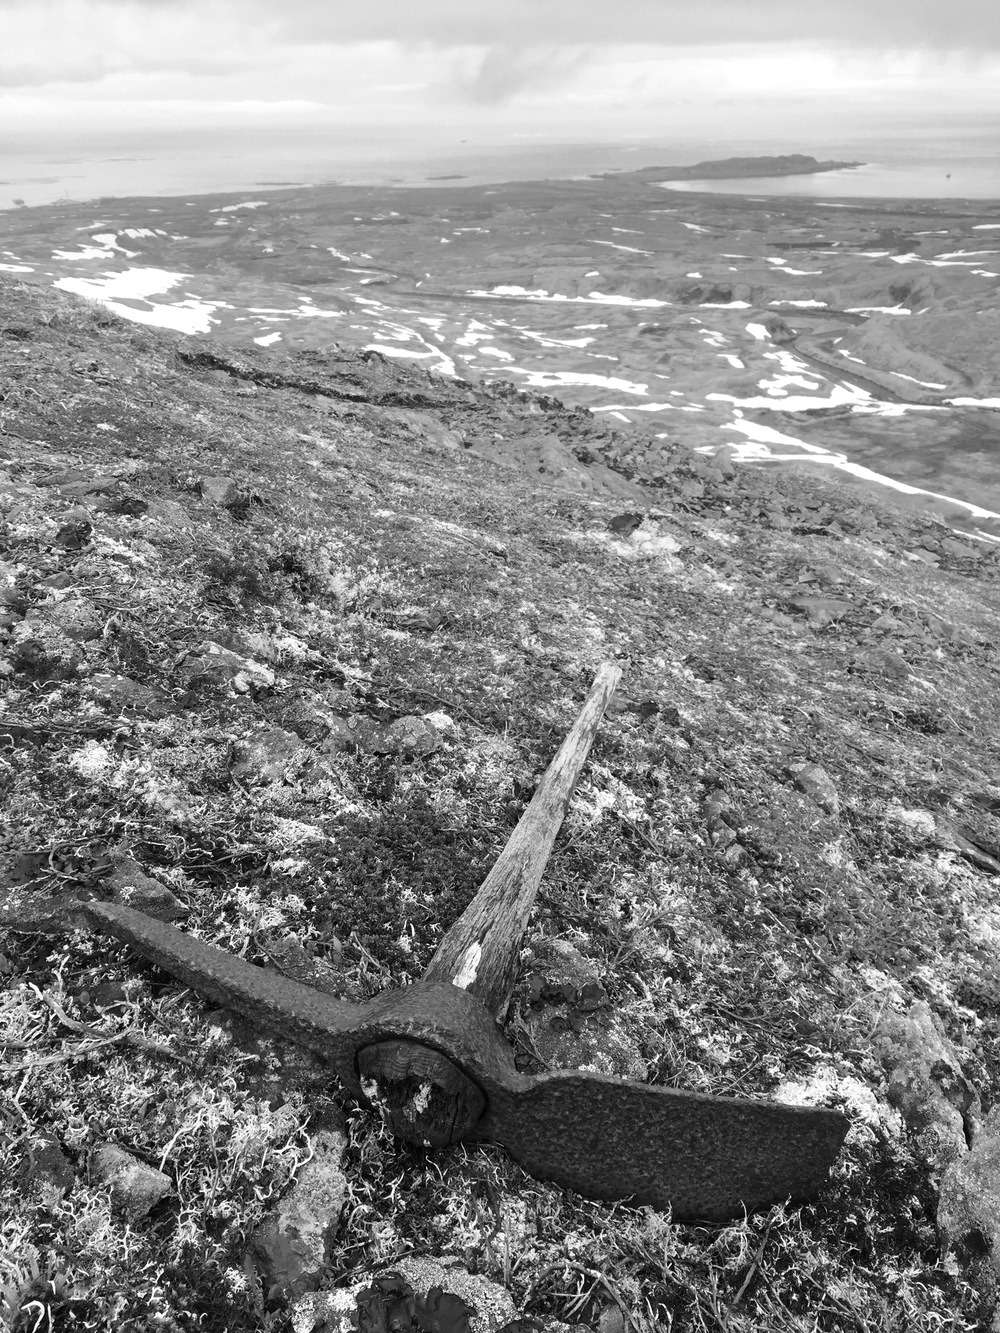 A relic of days gone by-- this pick axe was likely used to dig trenches and ditches on the mountain hillsides